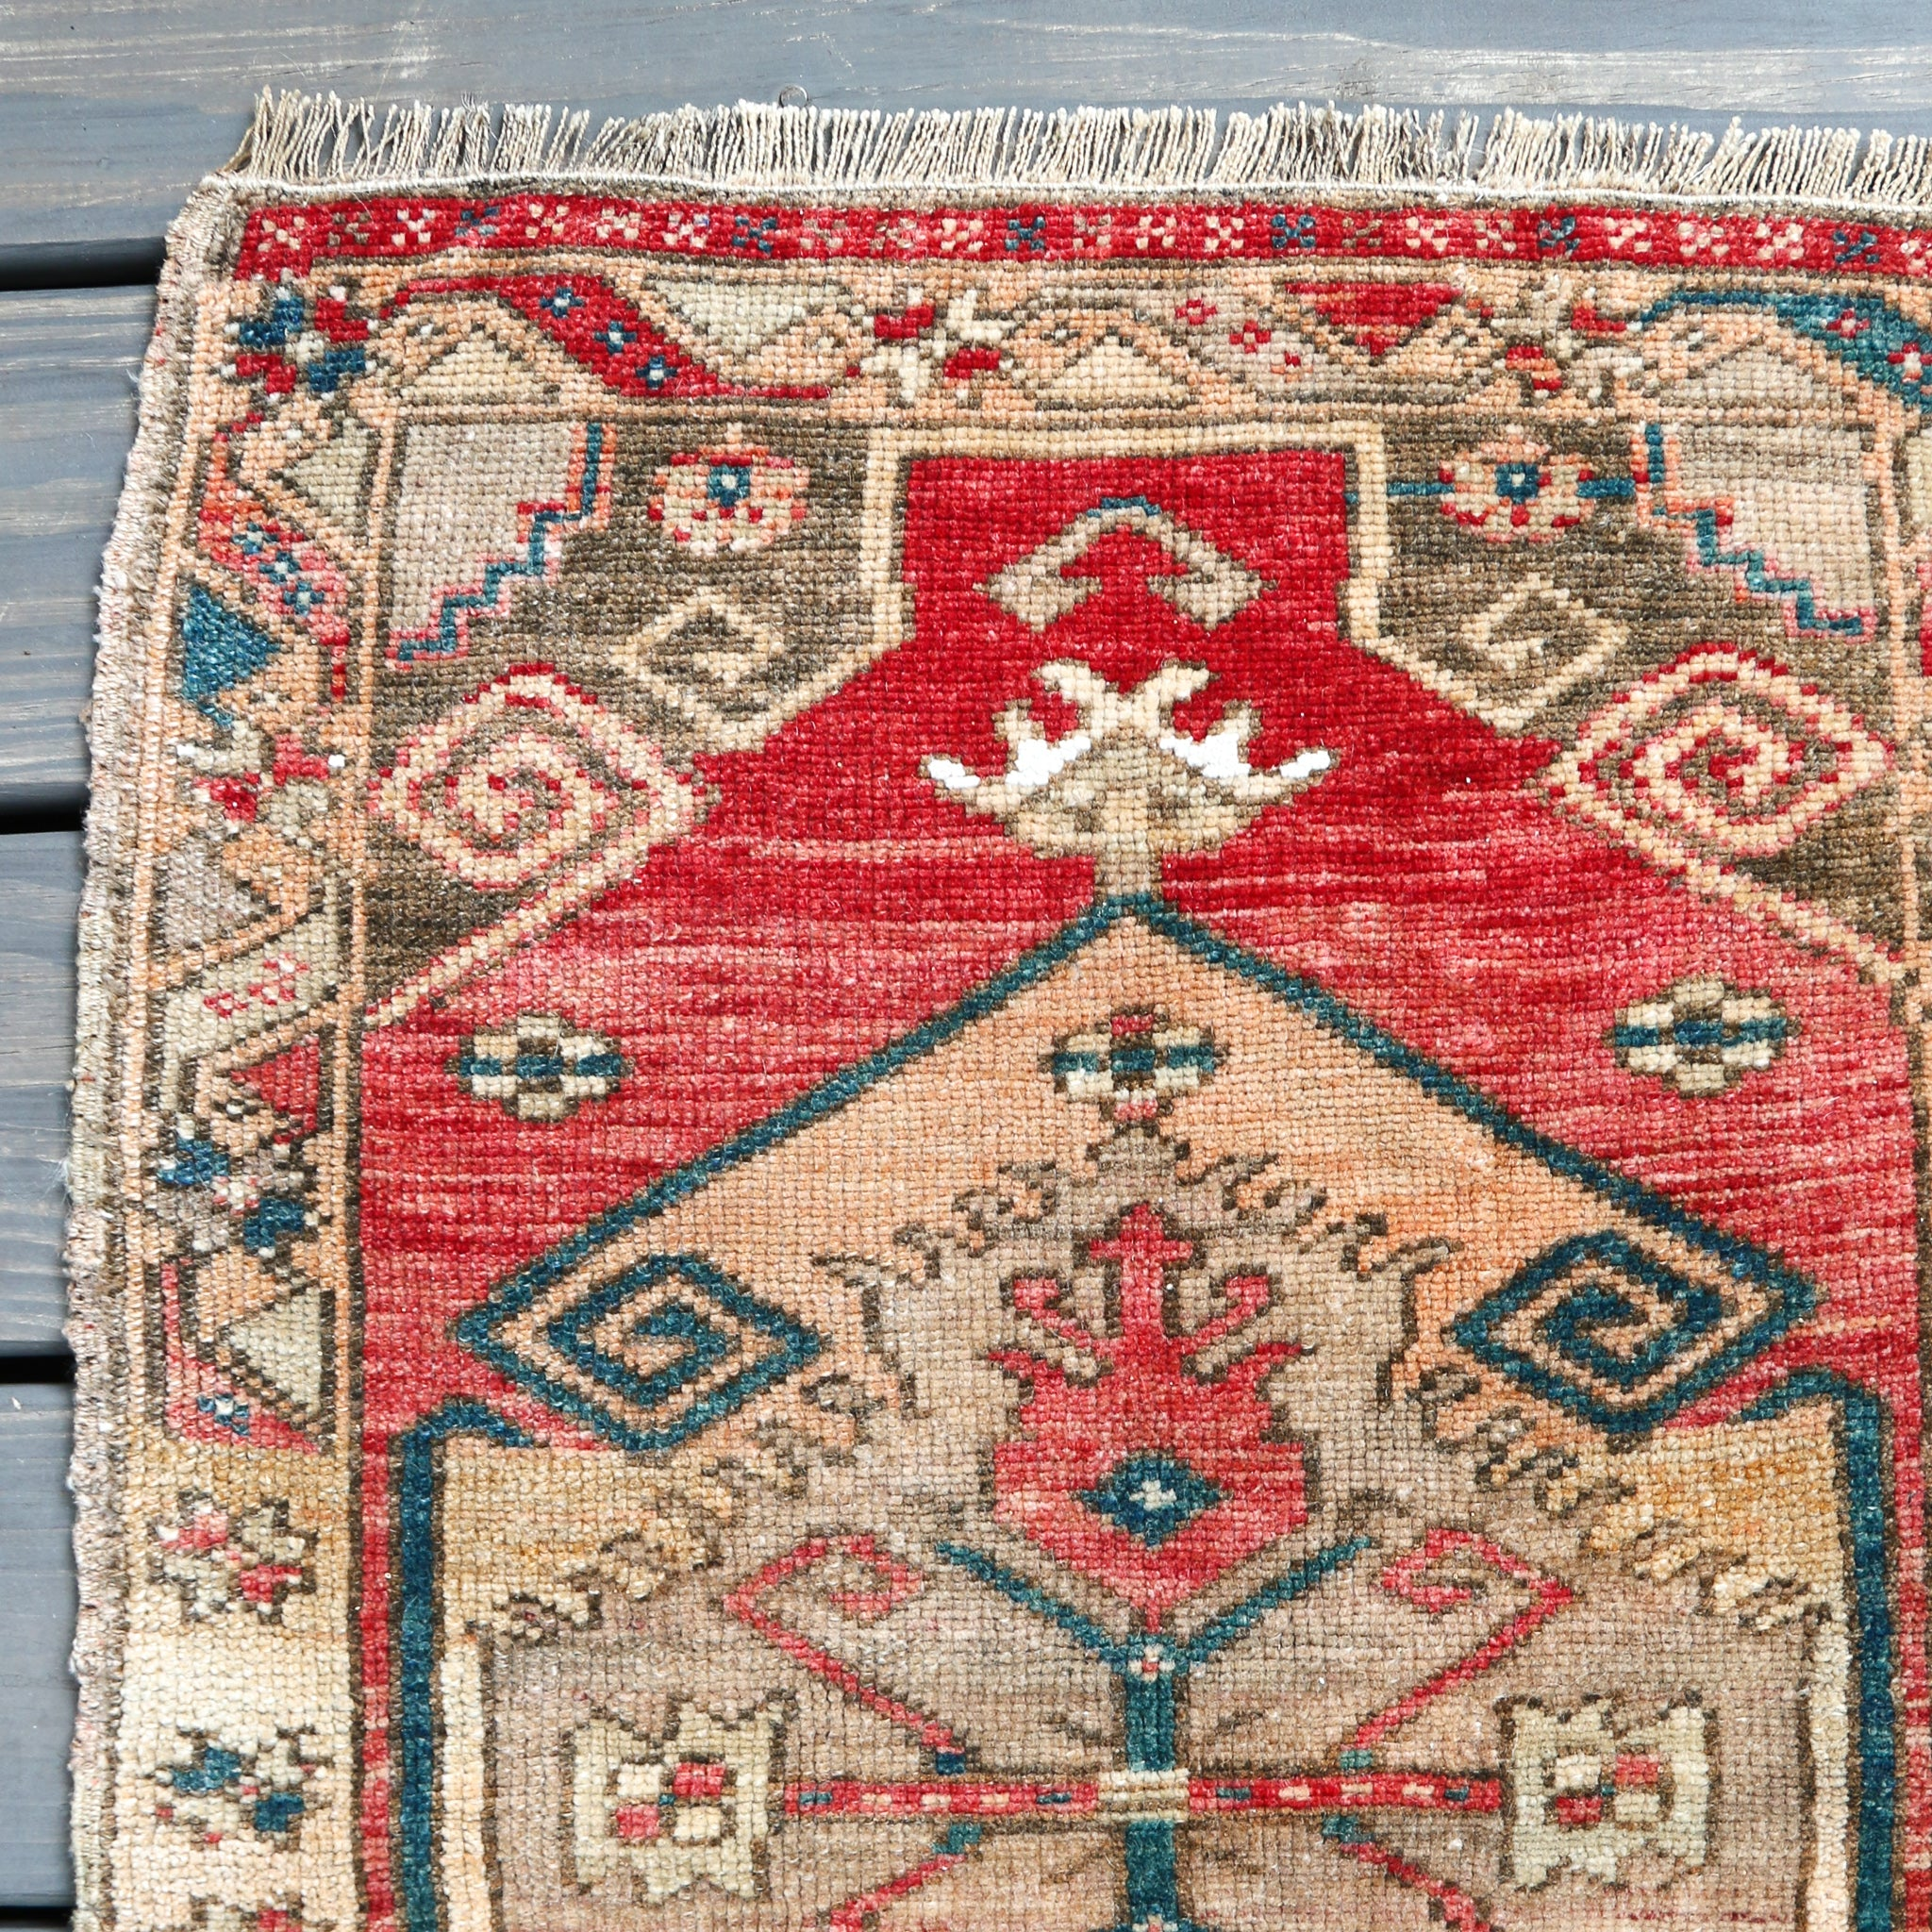 ON HOLD NOT AVAILABLE 1465 Small Handwoven Vintage Rug 1'11x2'8